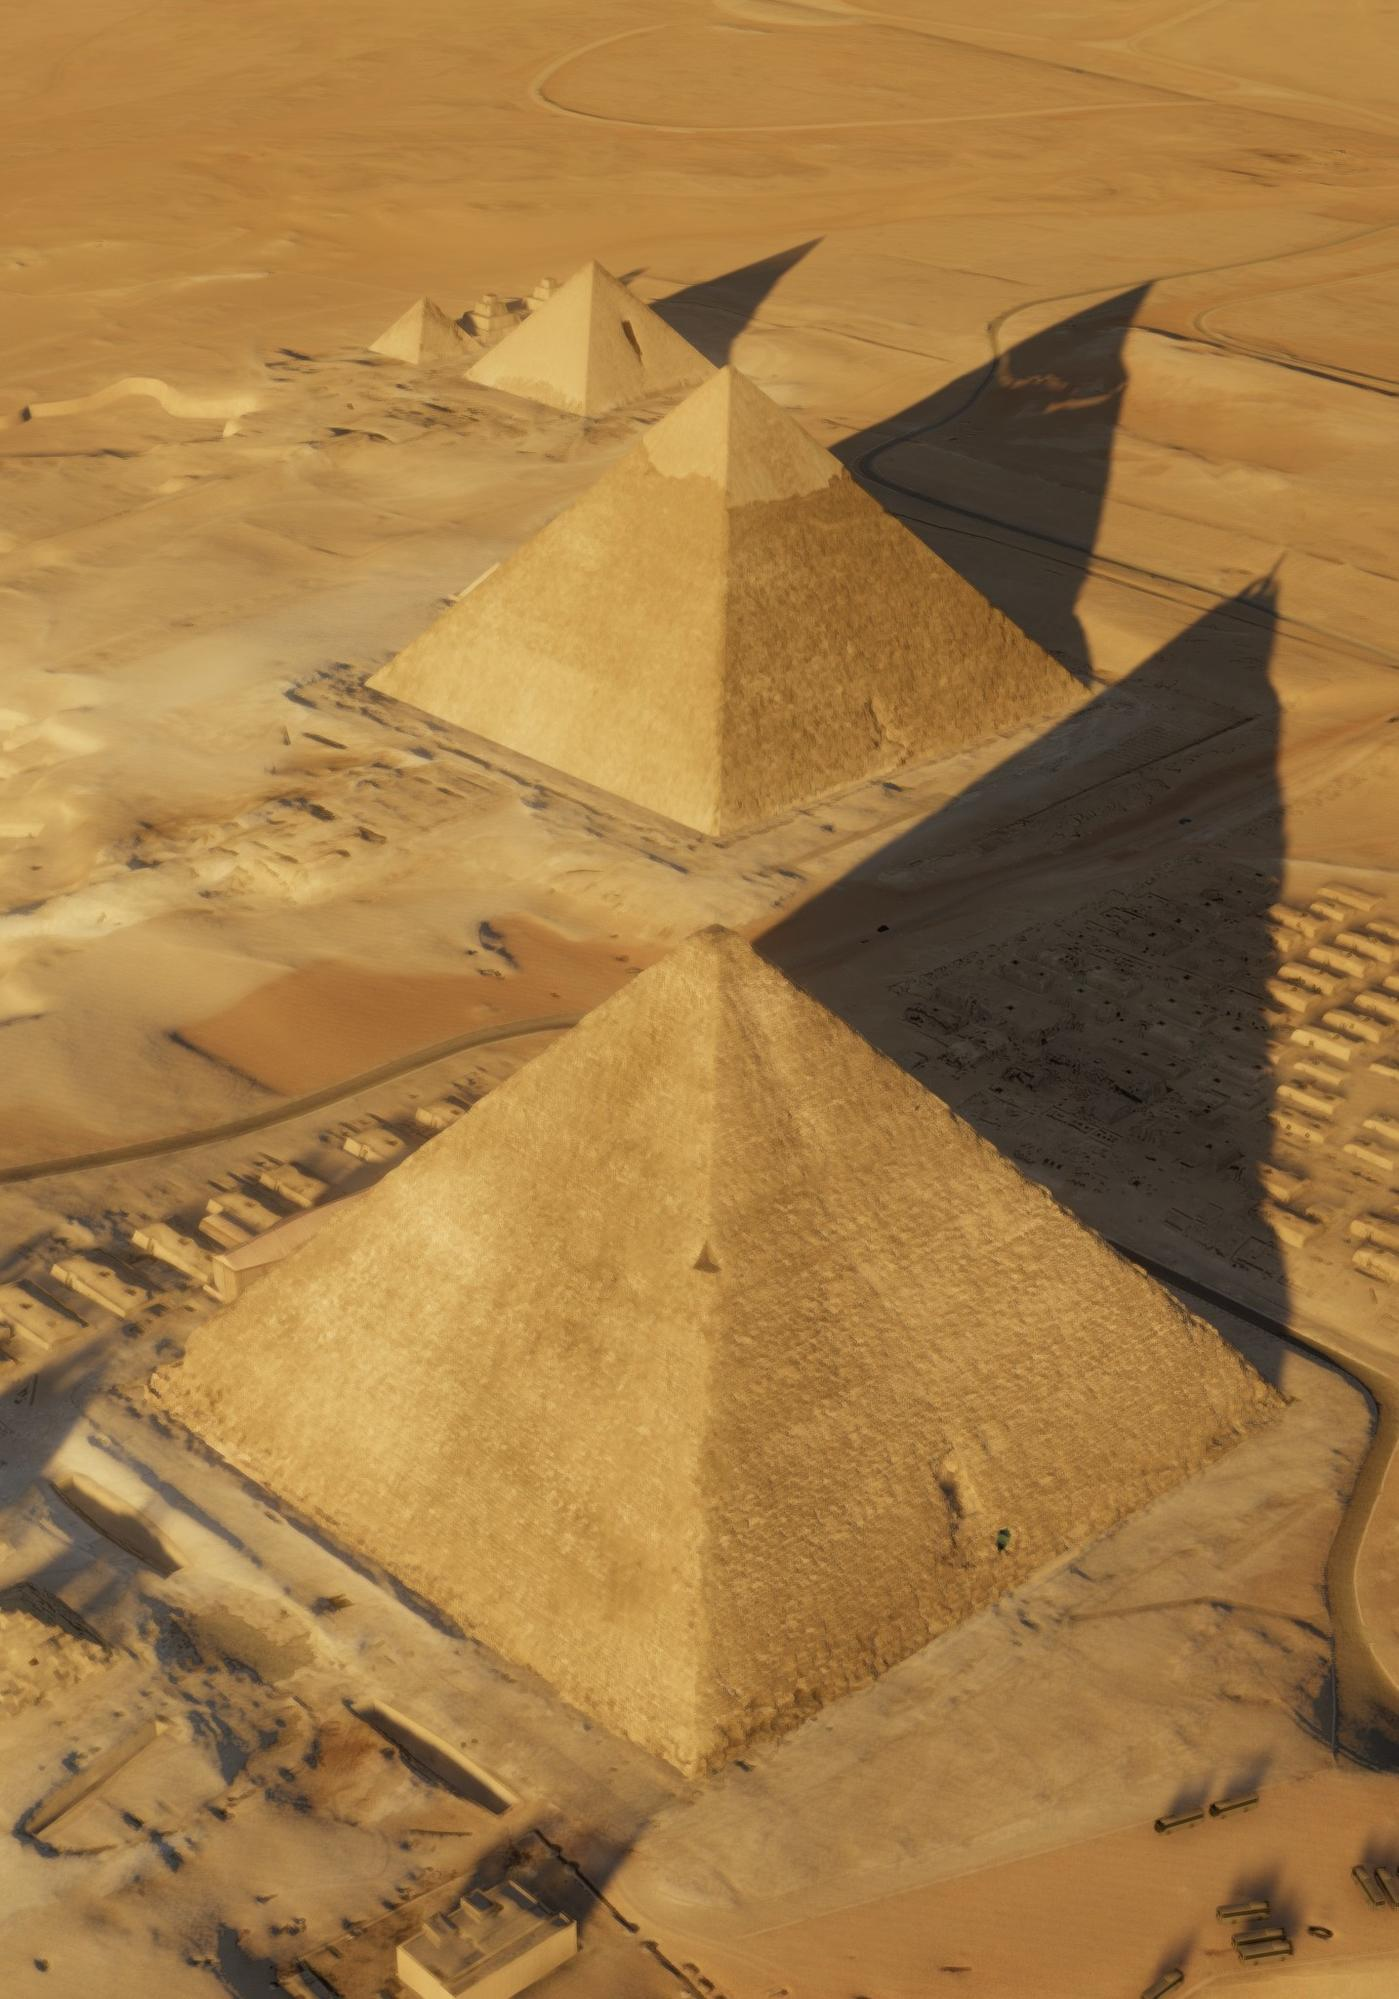 An aerial view of the pyramids at Giza. Khufu's Pyramid is in the foreground.